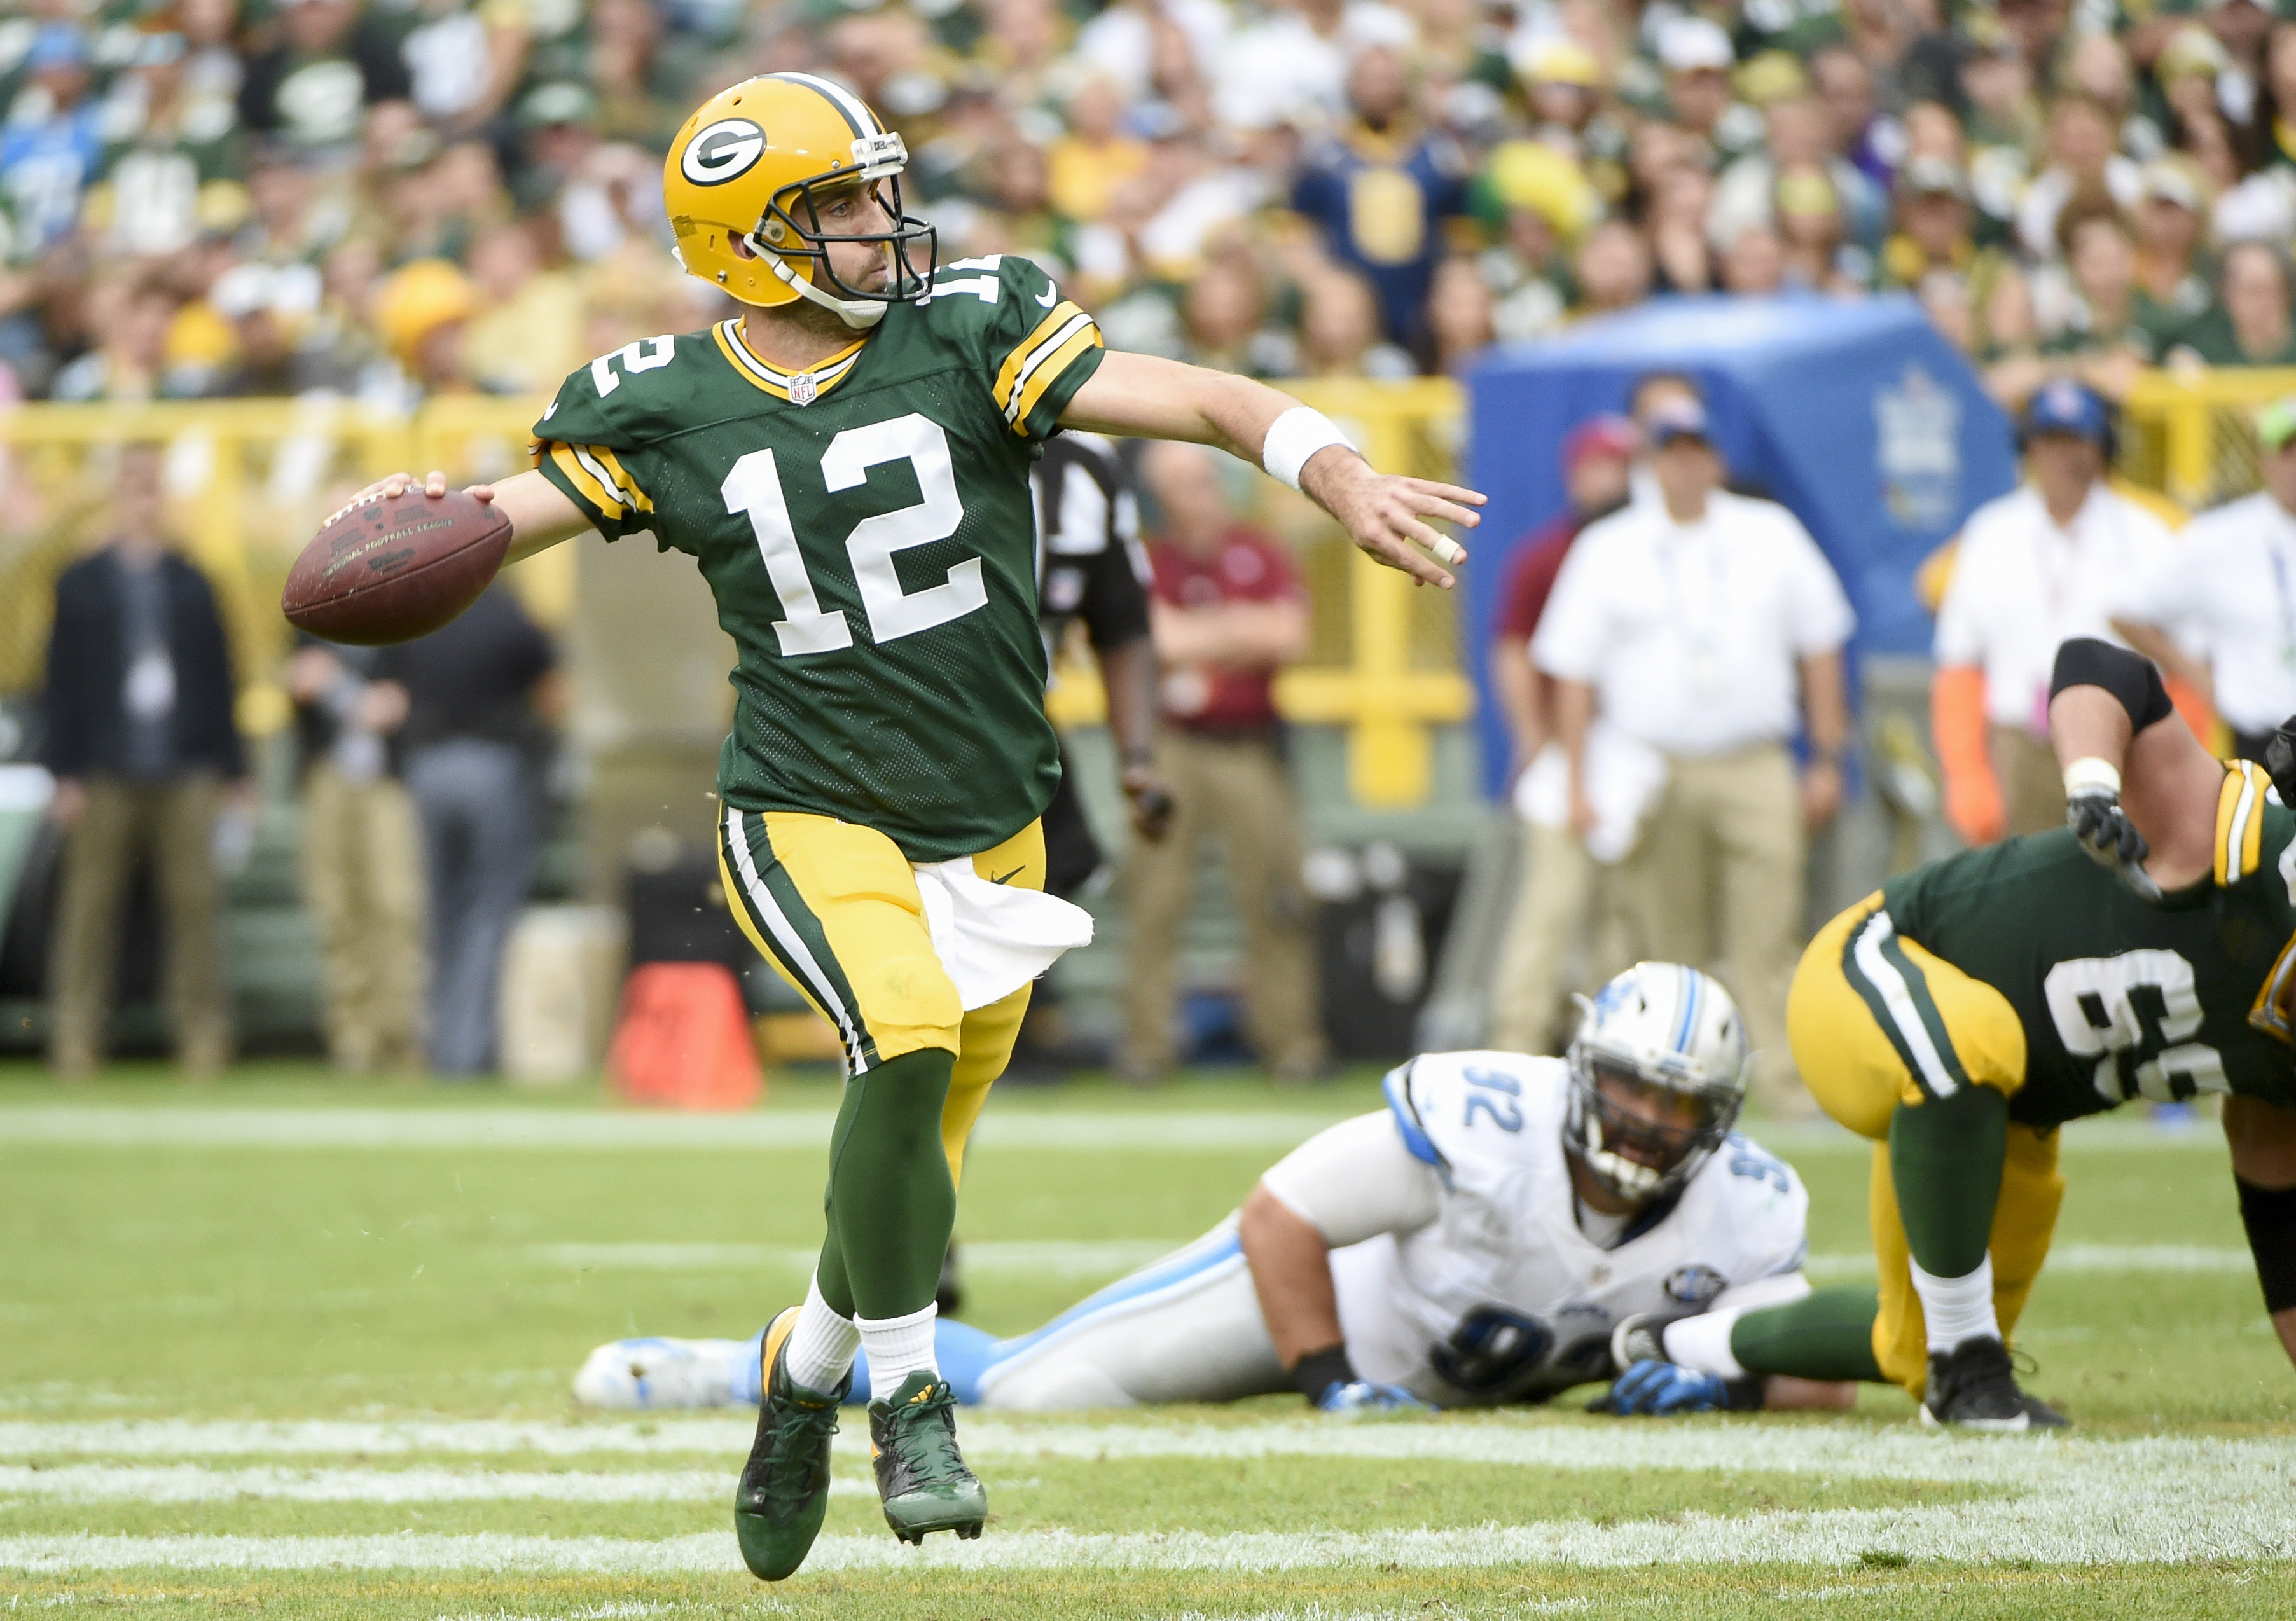 Flashback 2014: Aaron Rodgers Returns from Injury to Lead Packers Past Lions for Division Title